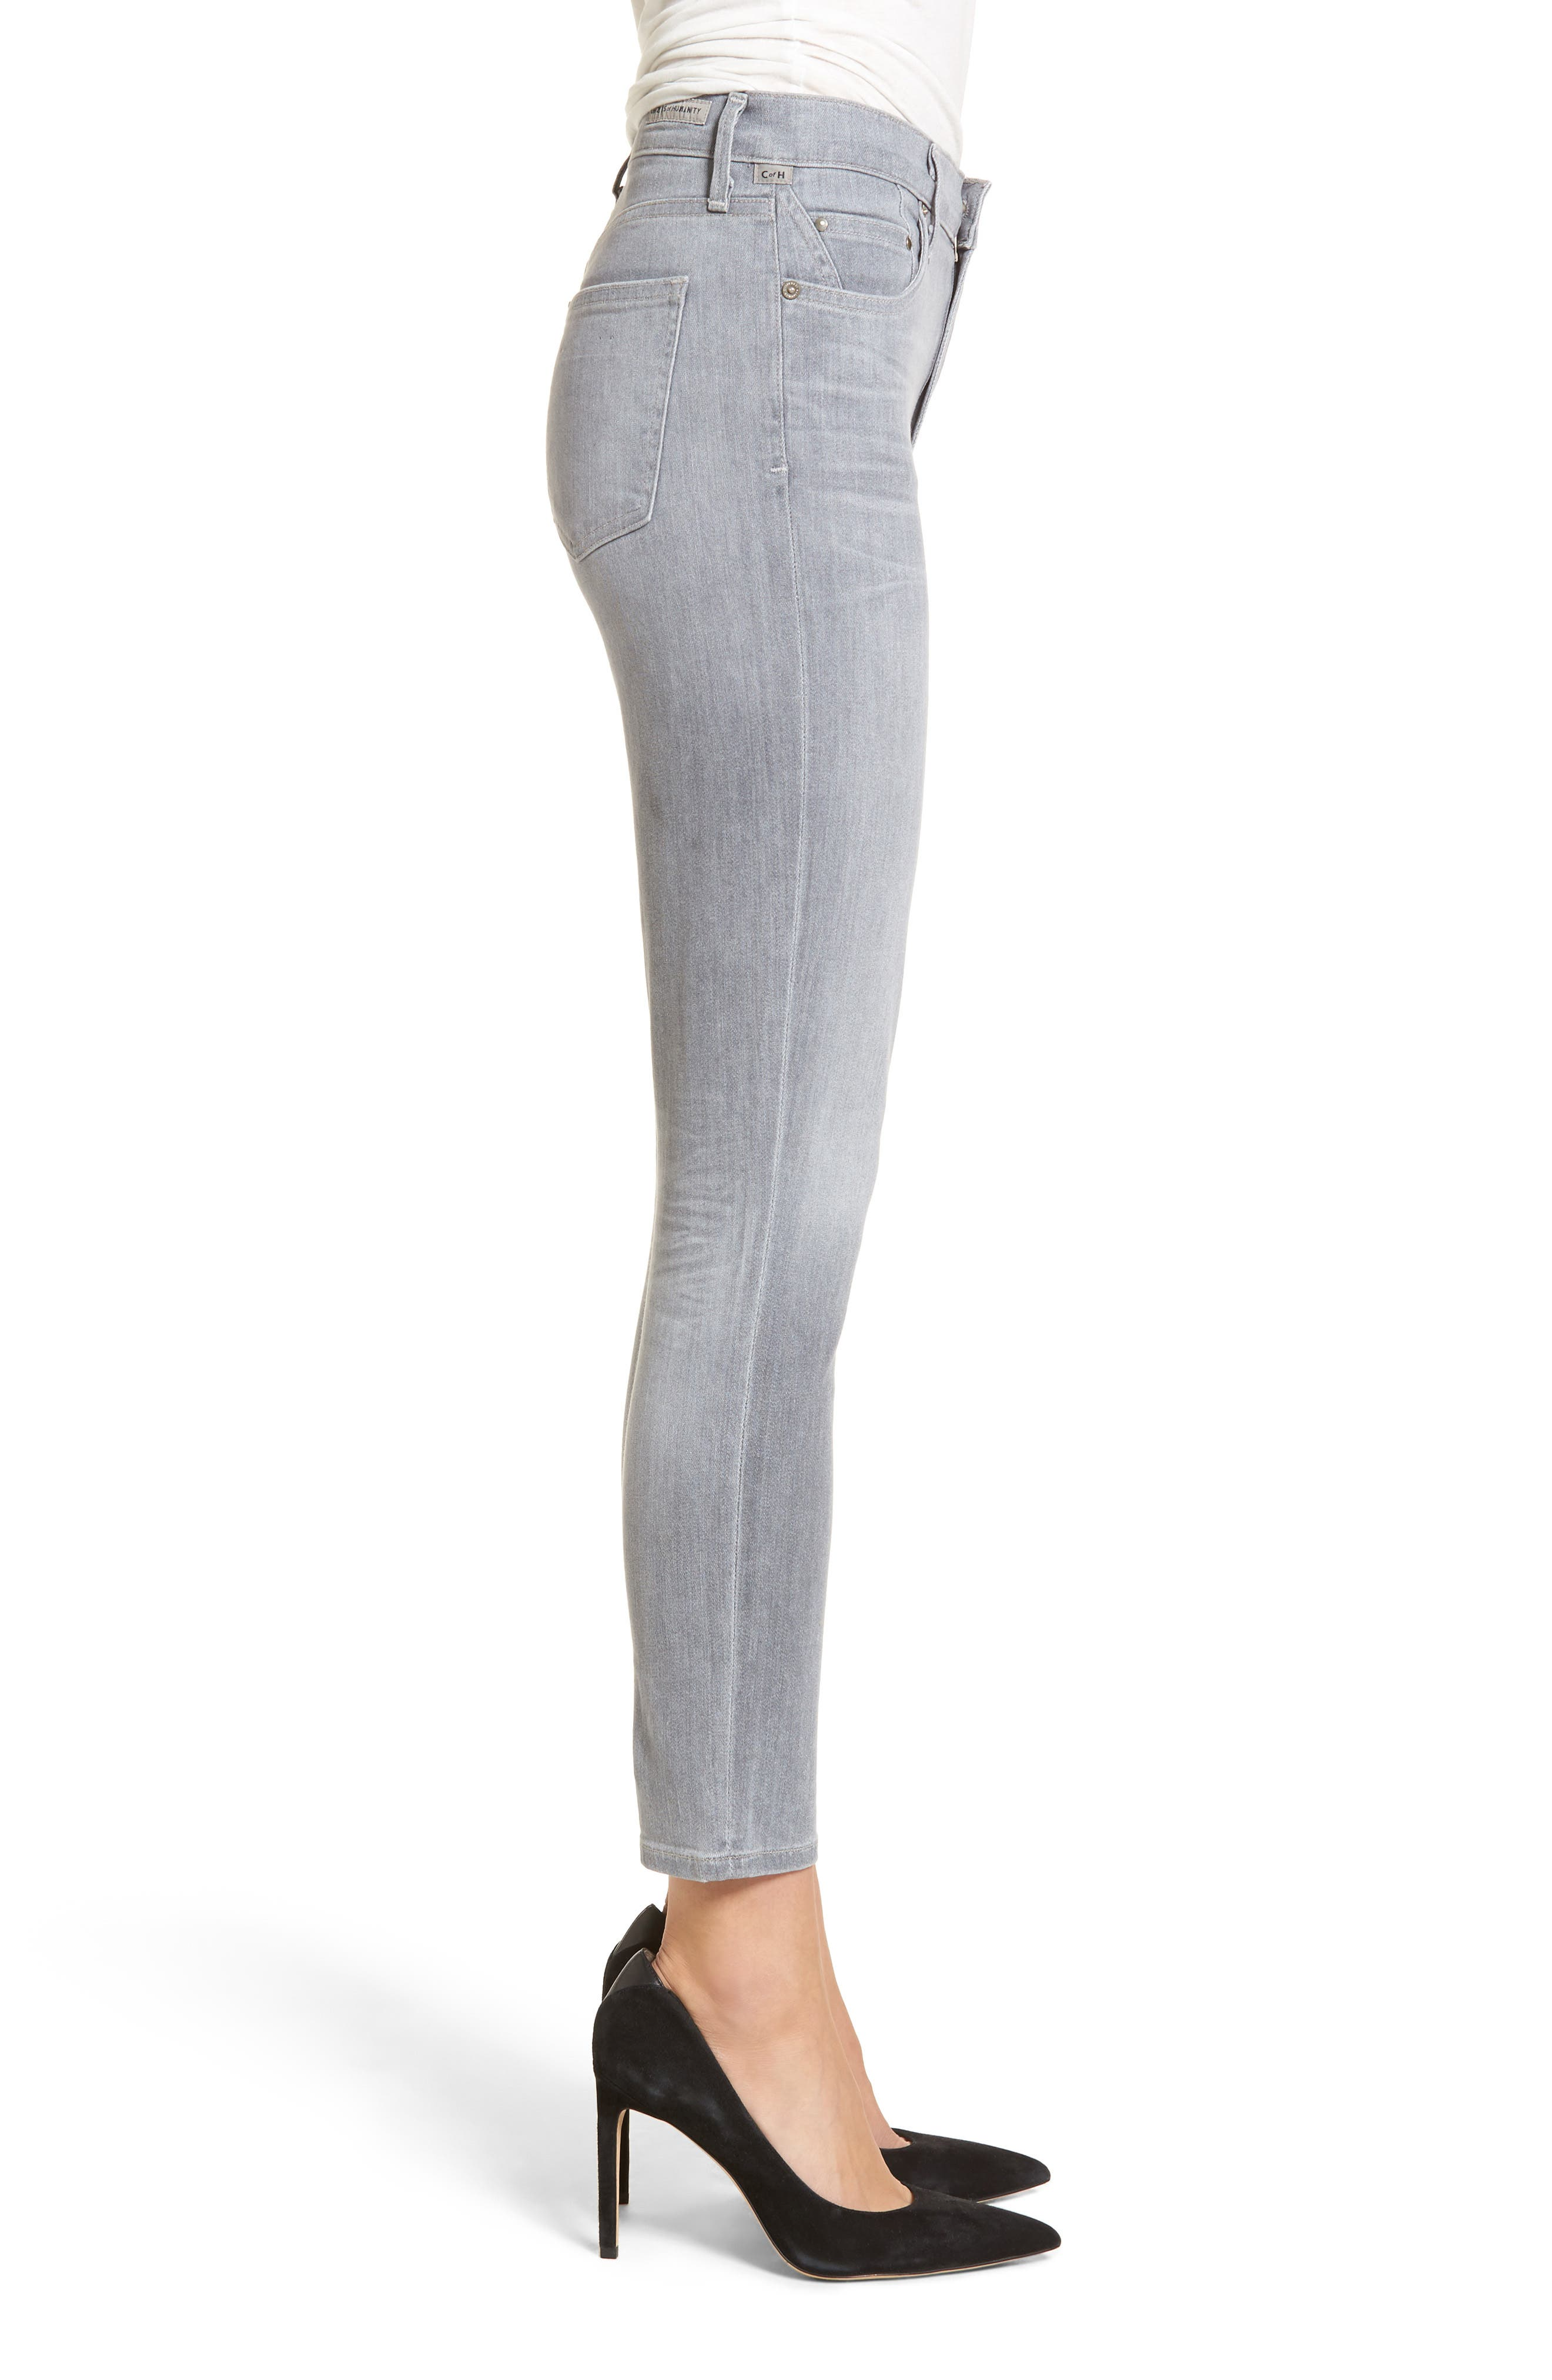 Rocket High Waist Crop Skinny Jeans,                             Alternate thumbnail 3, color,                             056